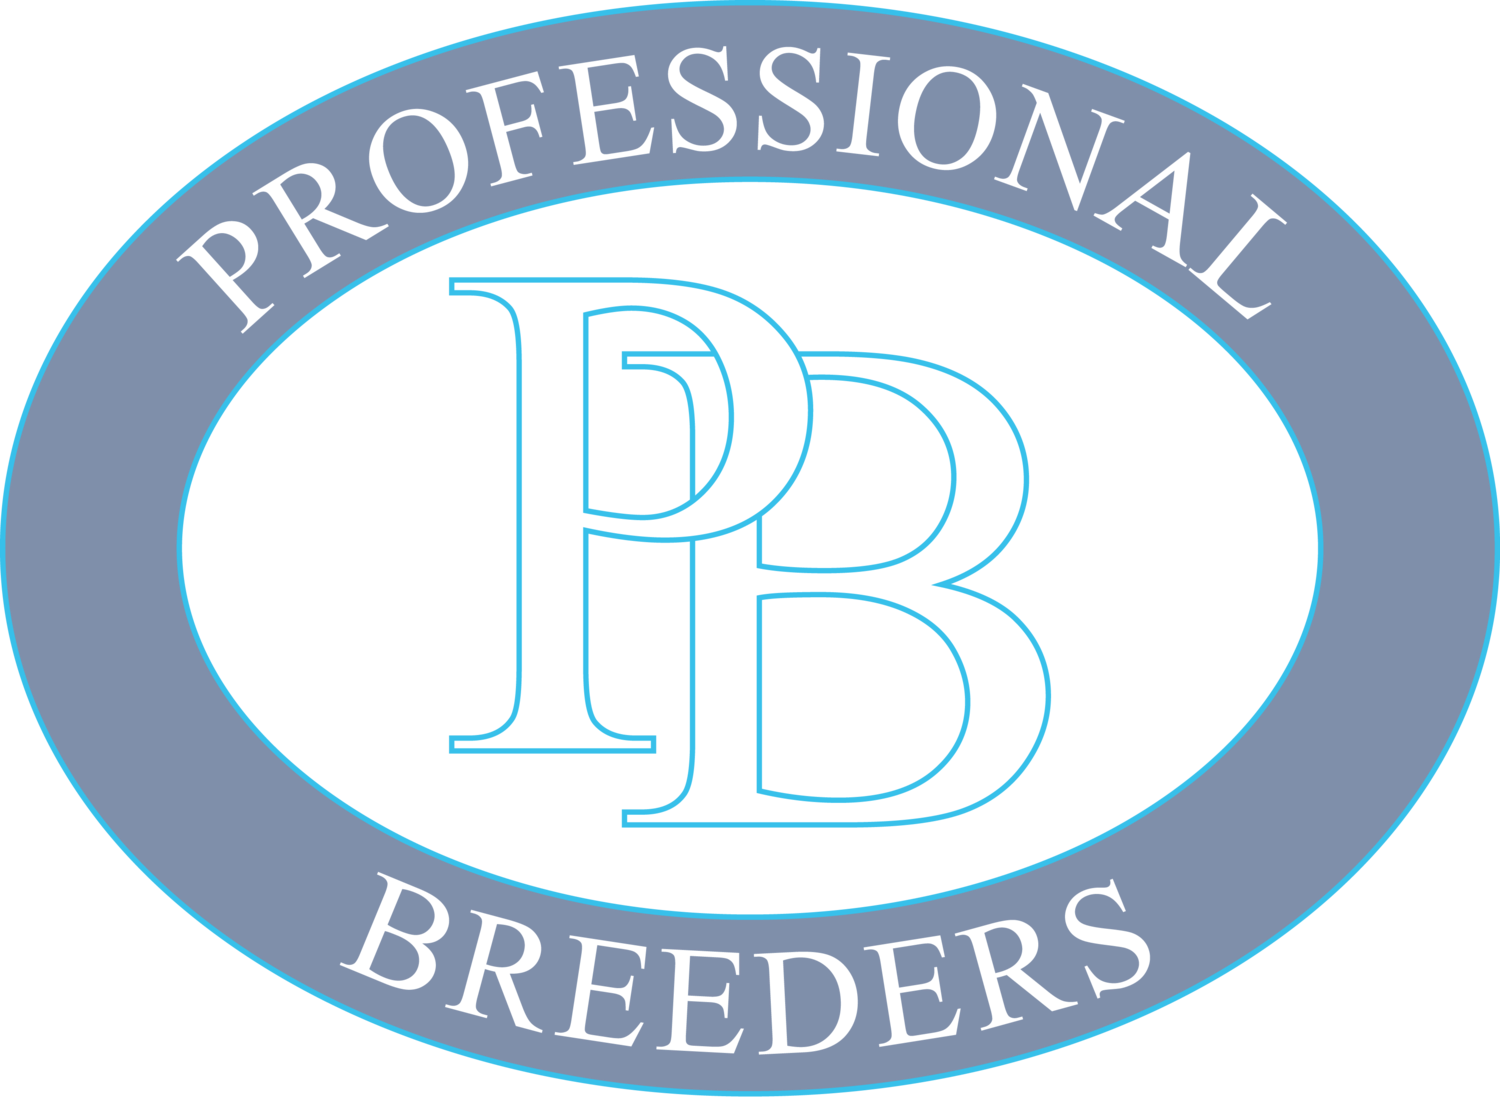 Professional Breeders